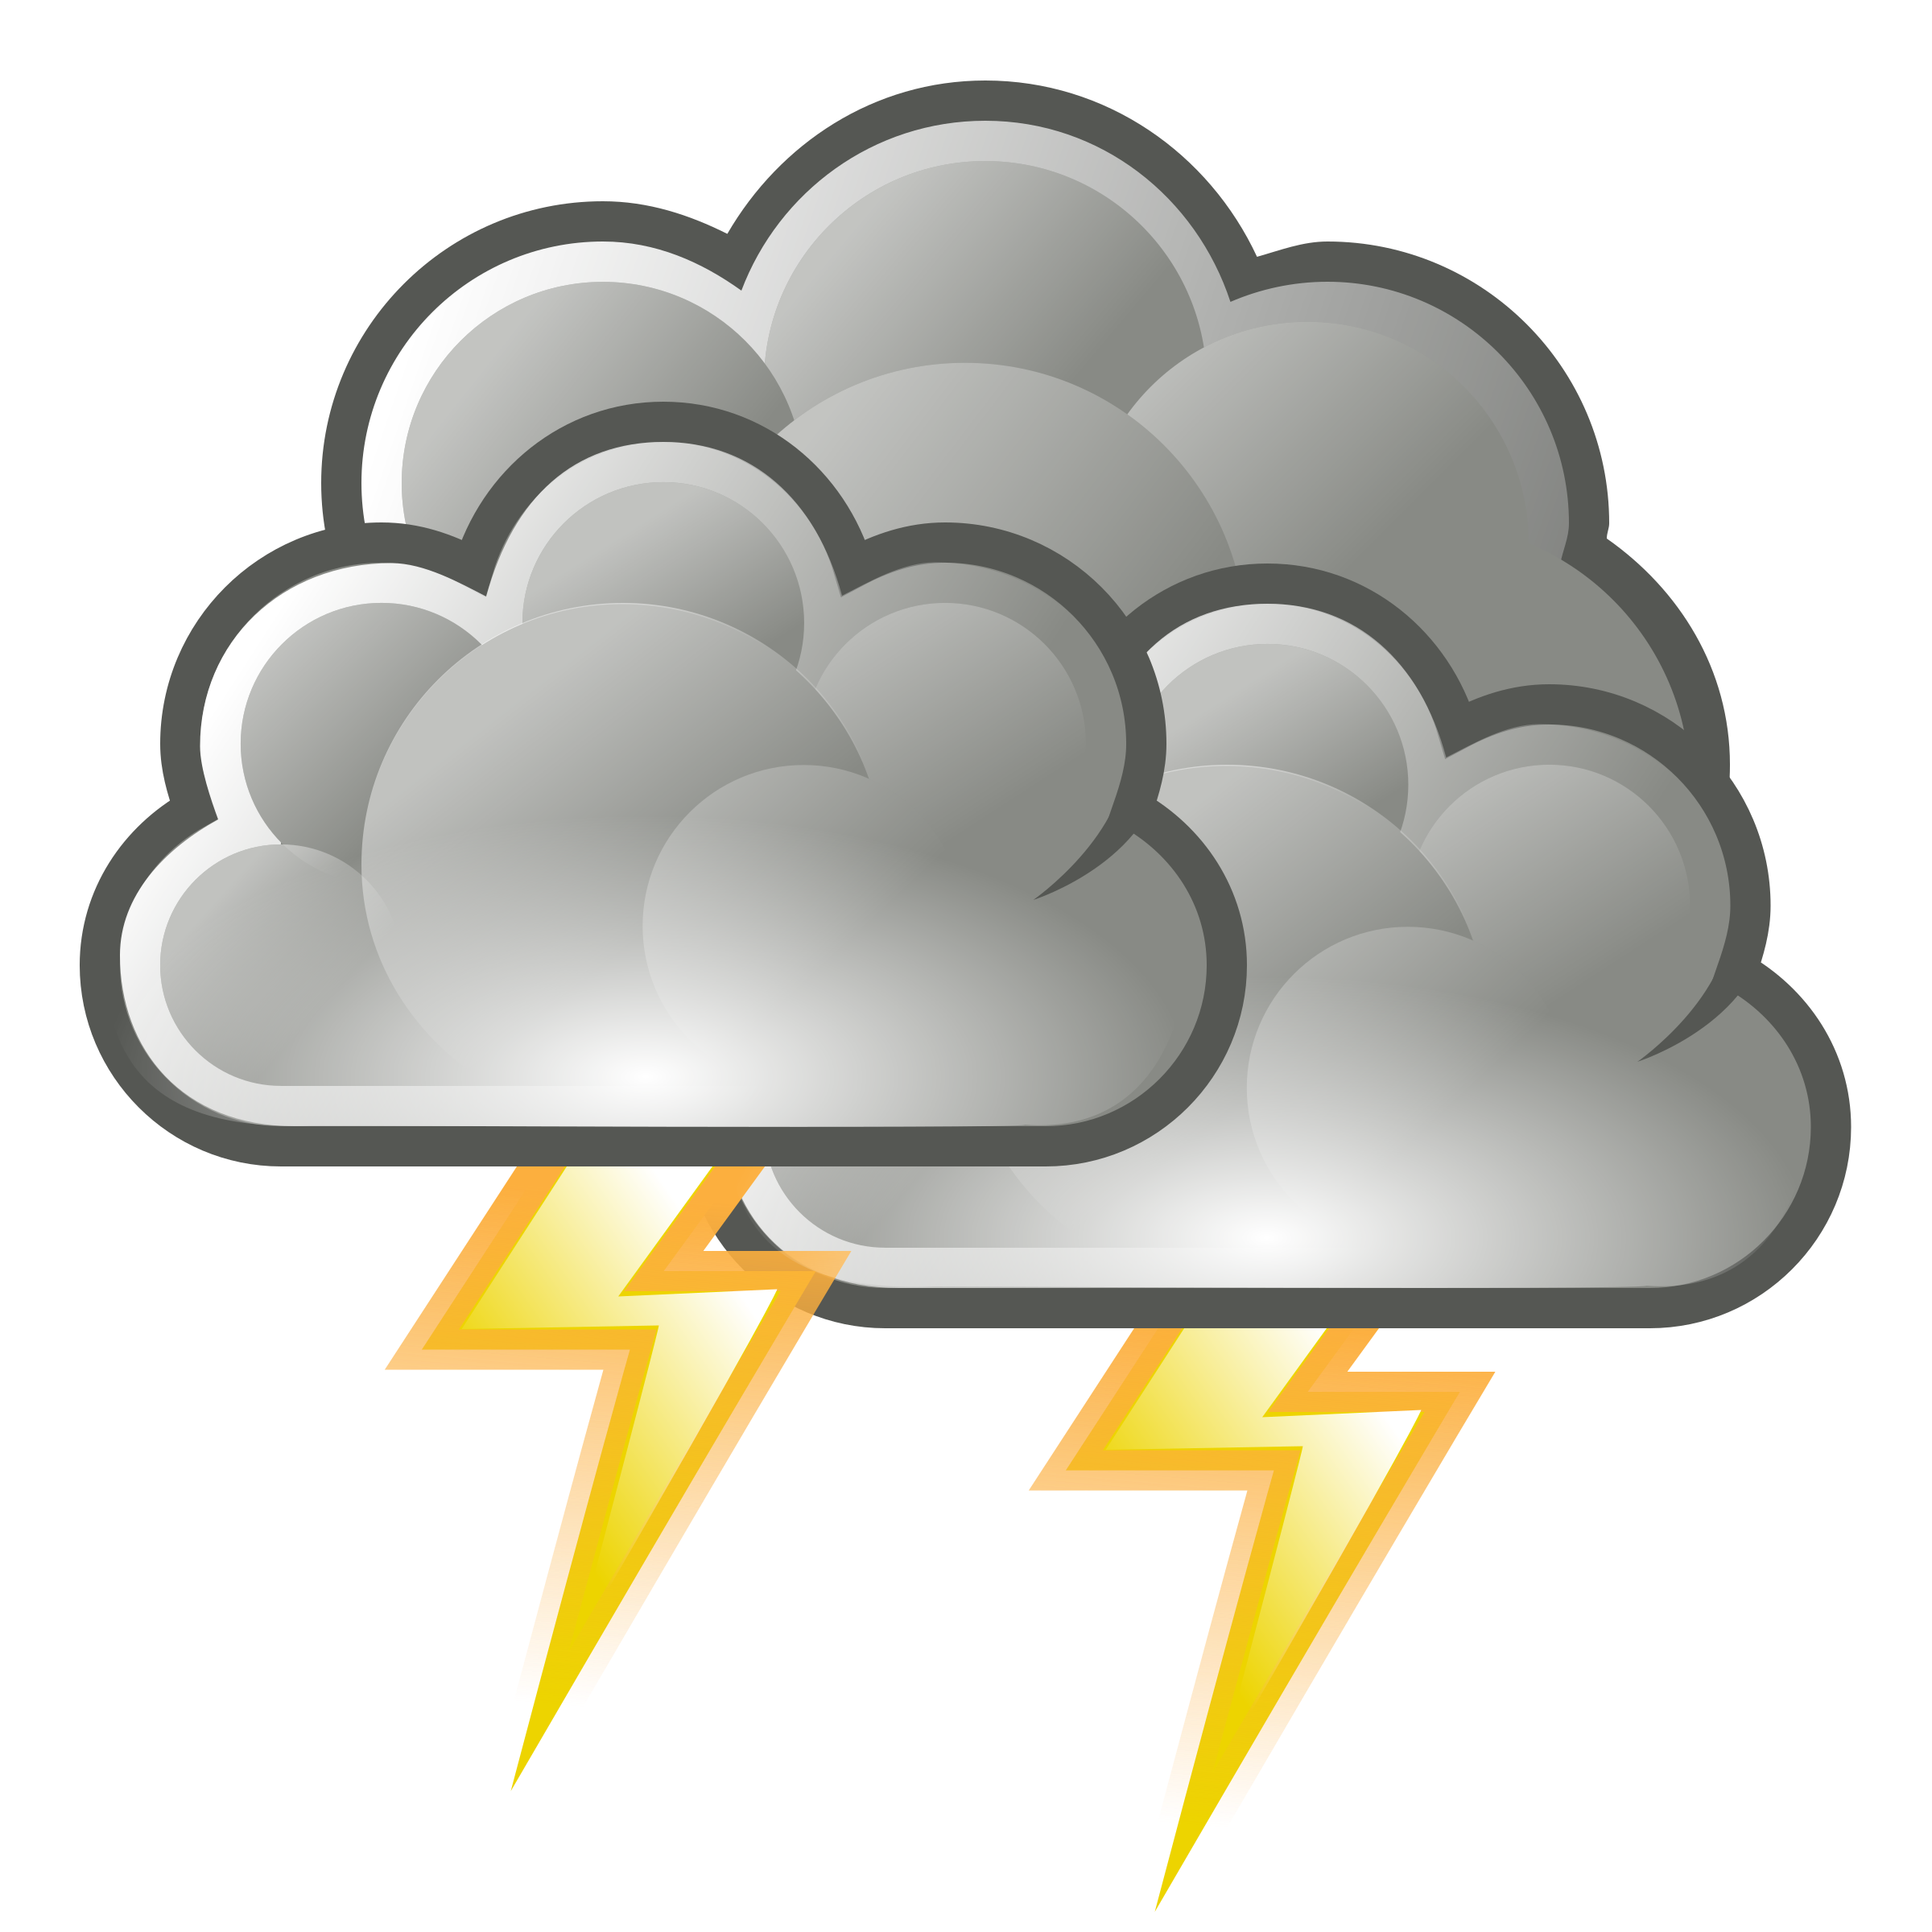 collection of storm. Schedule clipart delay